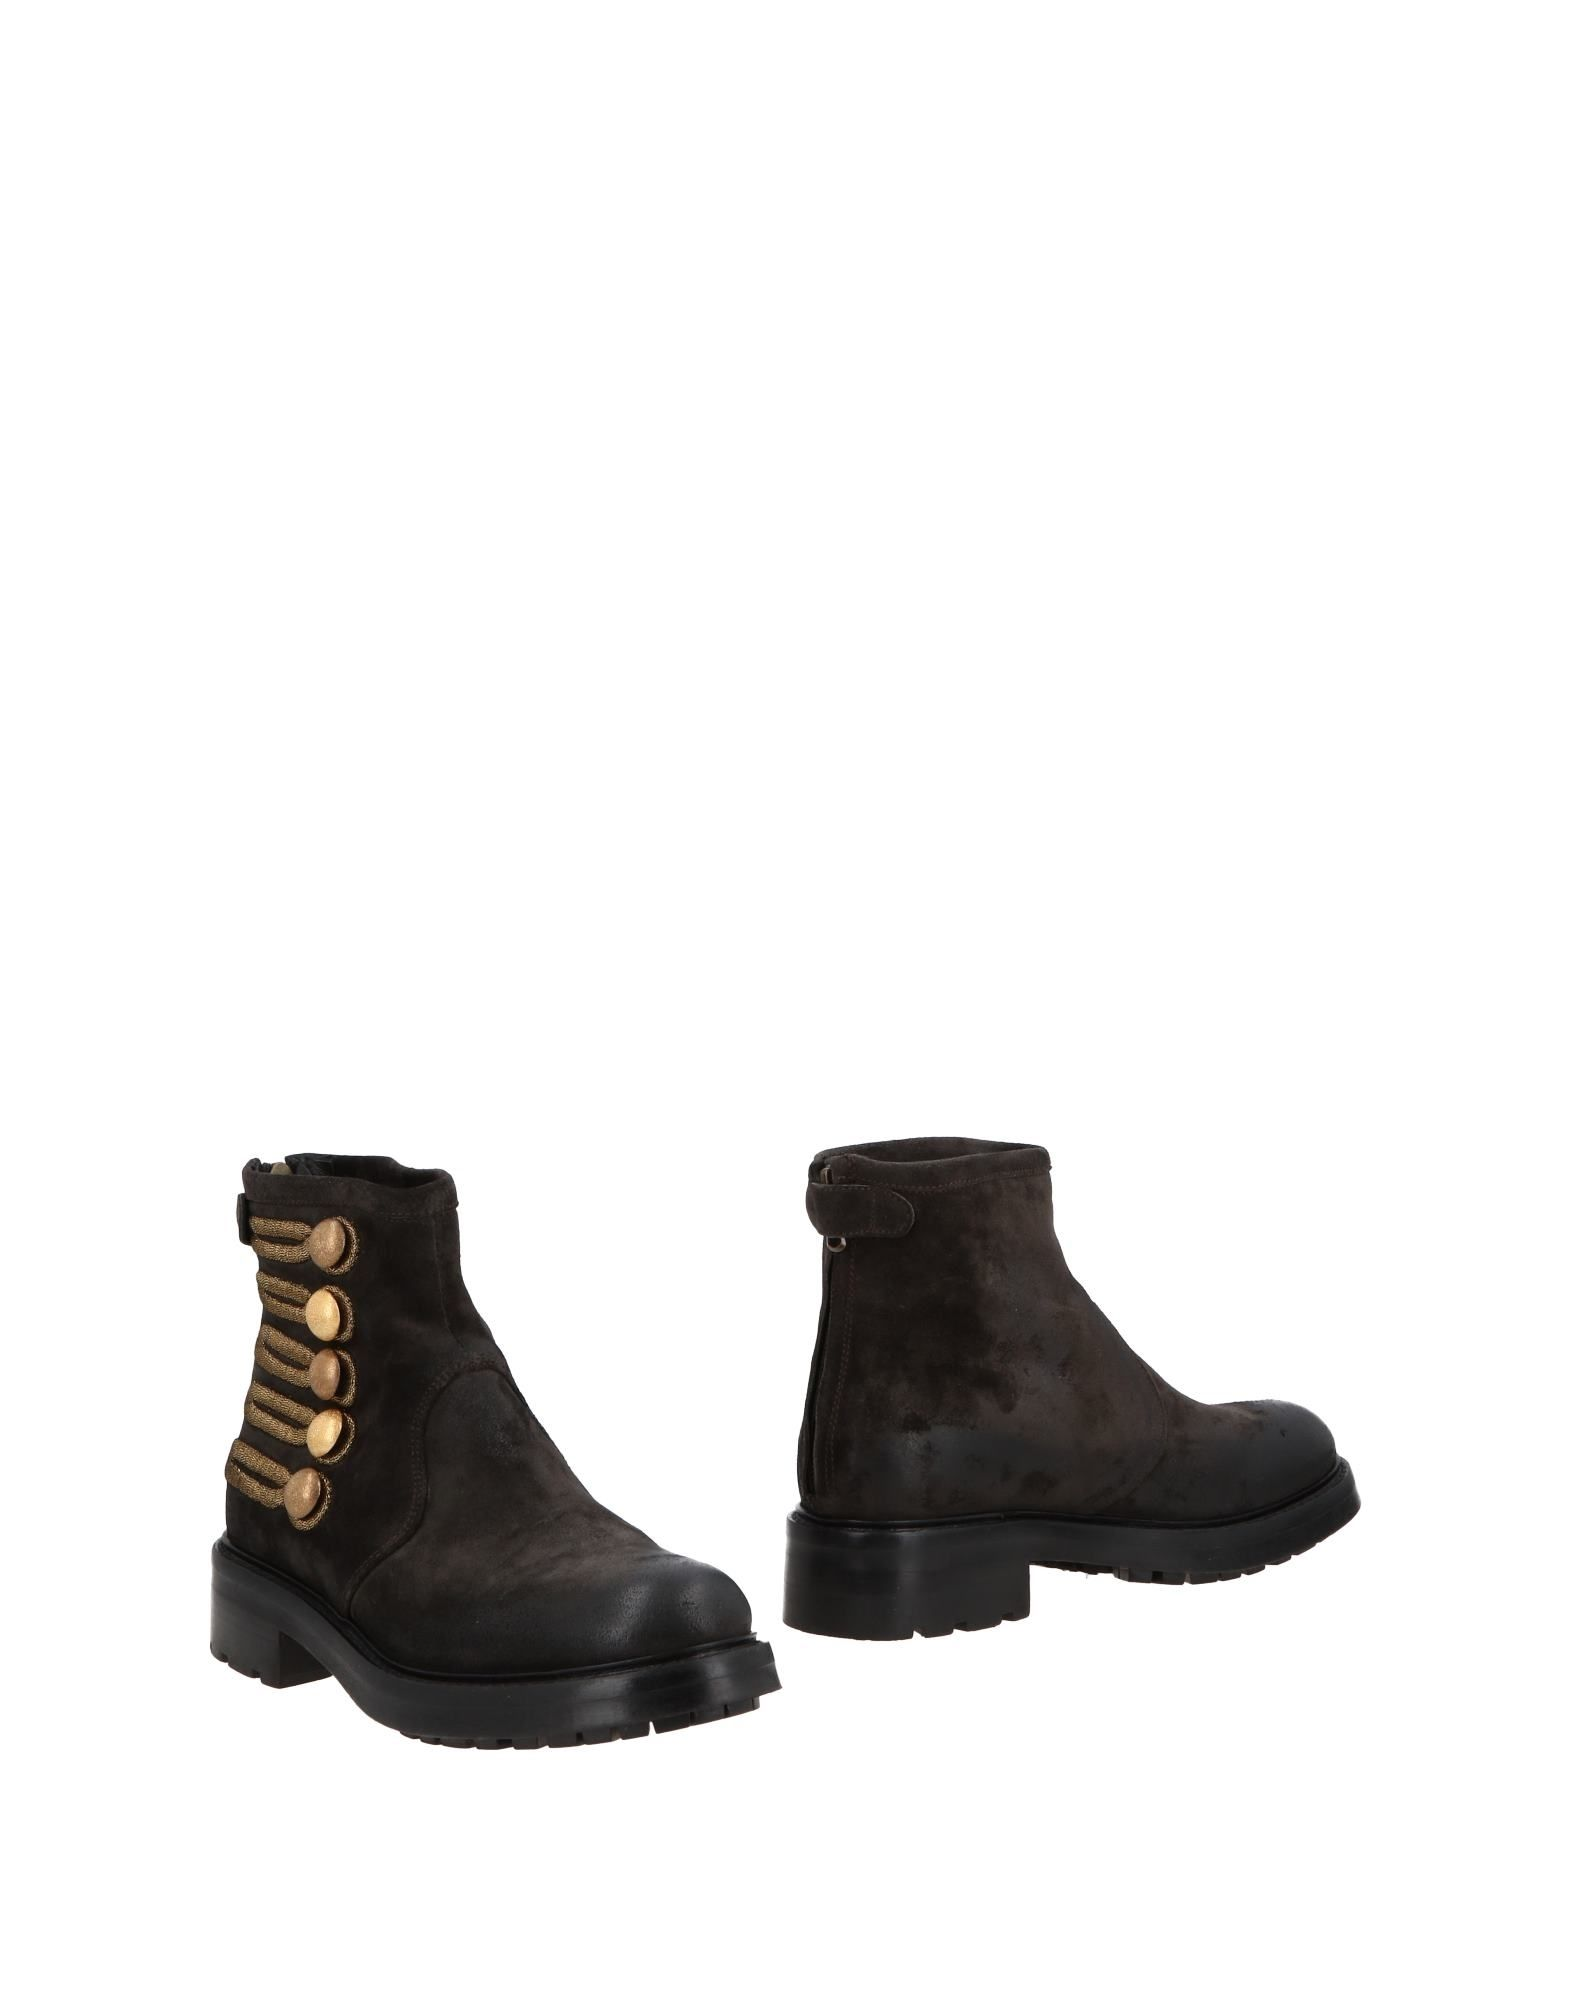 Strategia Ankle Boot - Women Strategia  Ankle Boots online on  Strategia Canada - 11494421TS 111e2a